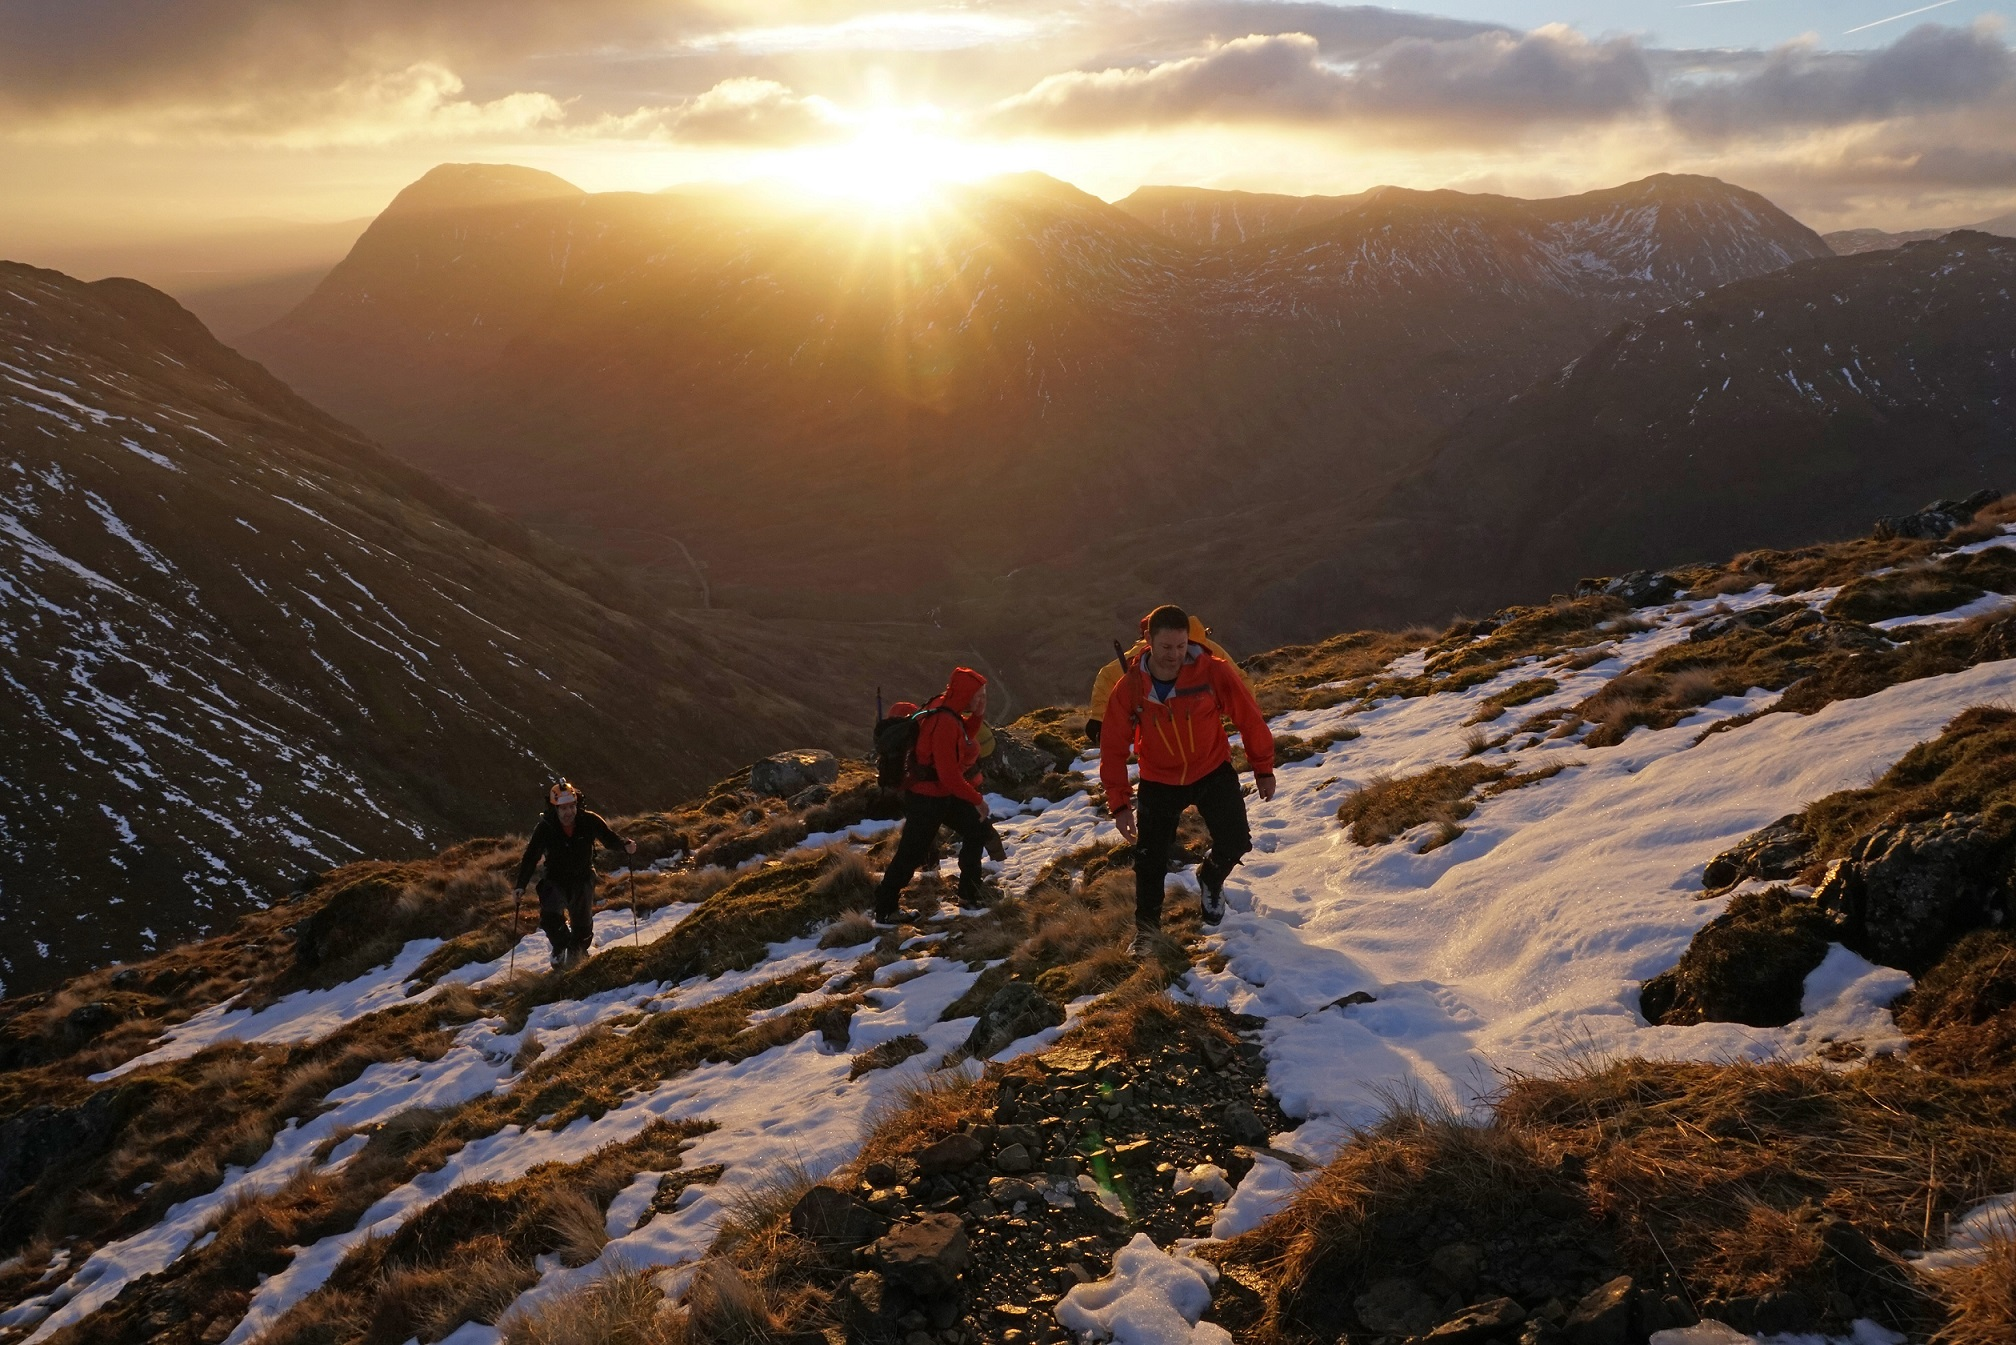 Hikers begin Aonach Eagach ridge ©tarquin_cooper